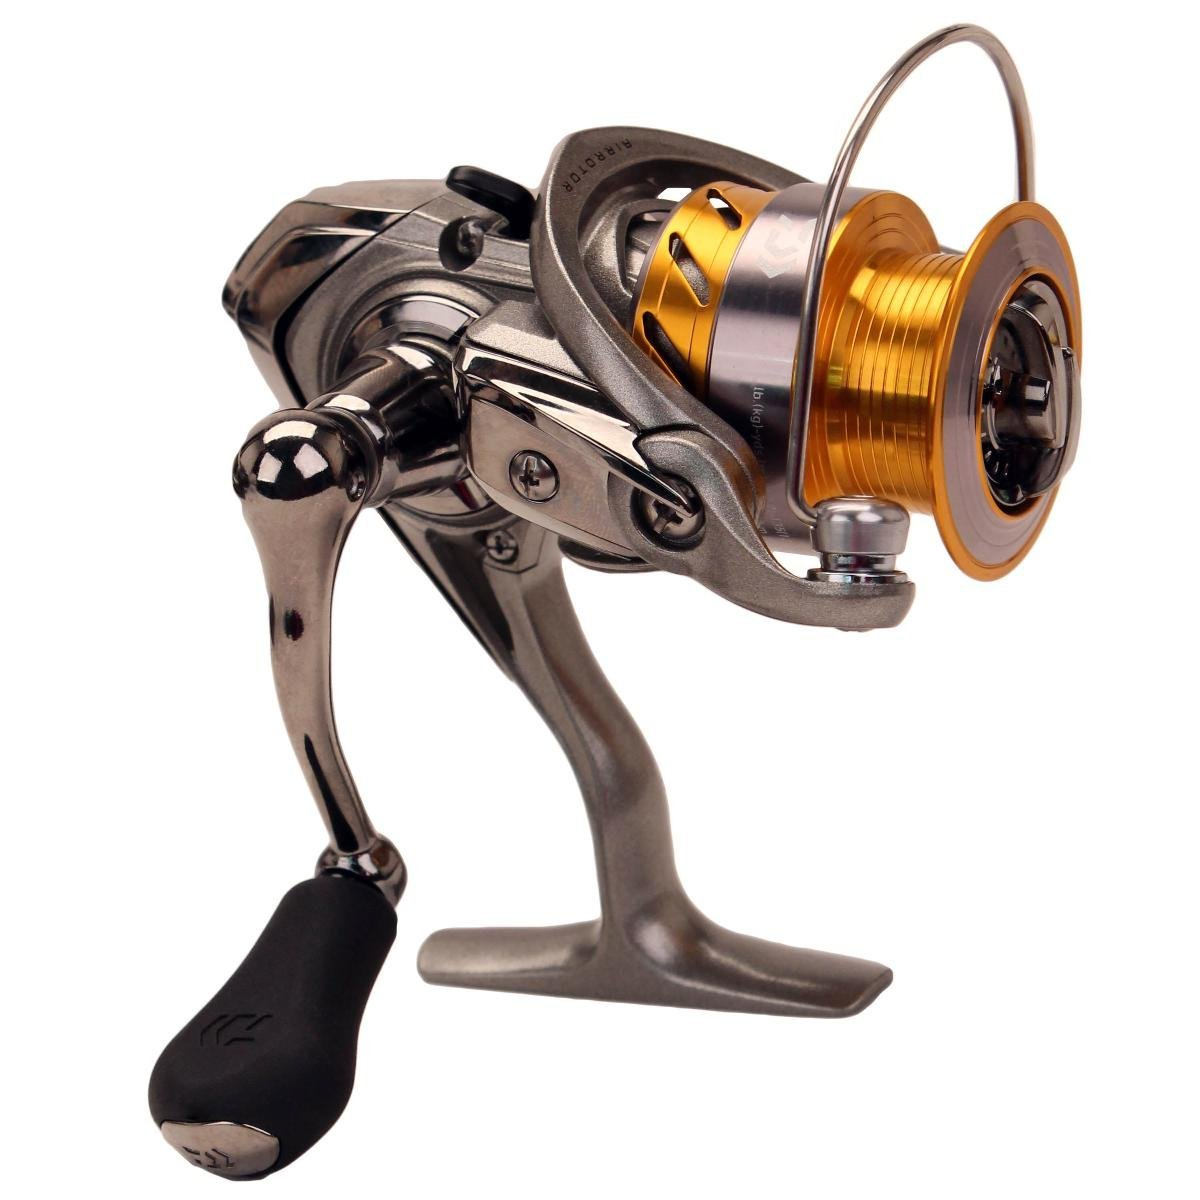 Daiwa revros 2000 spinning reel plan it outdoors for Keep it reel fishing